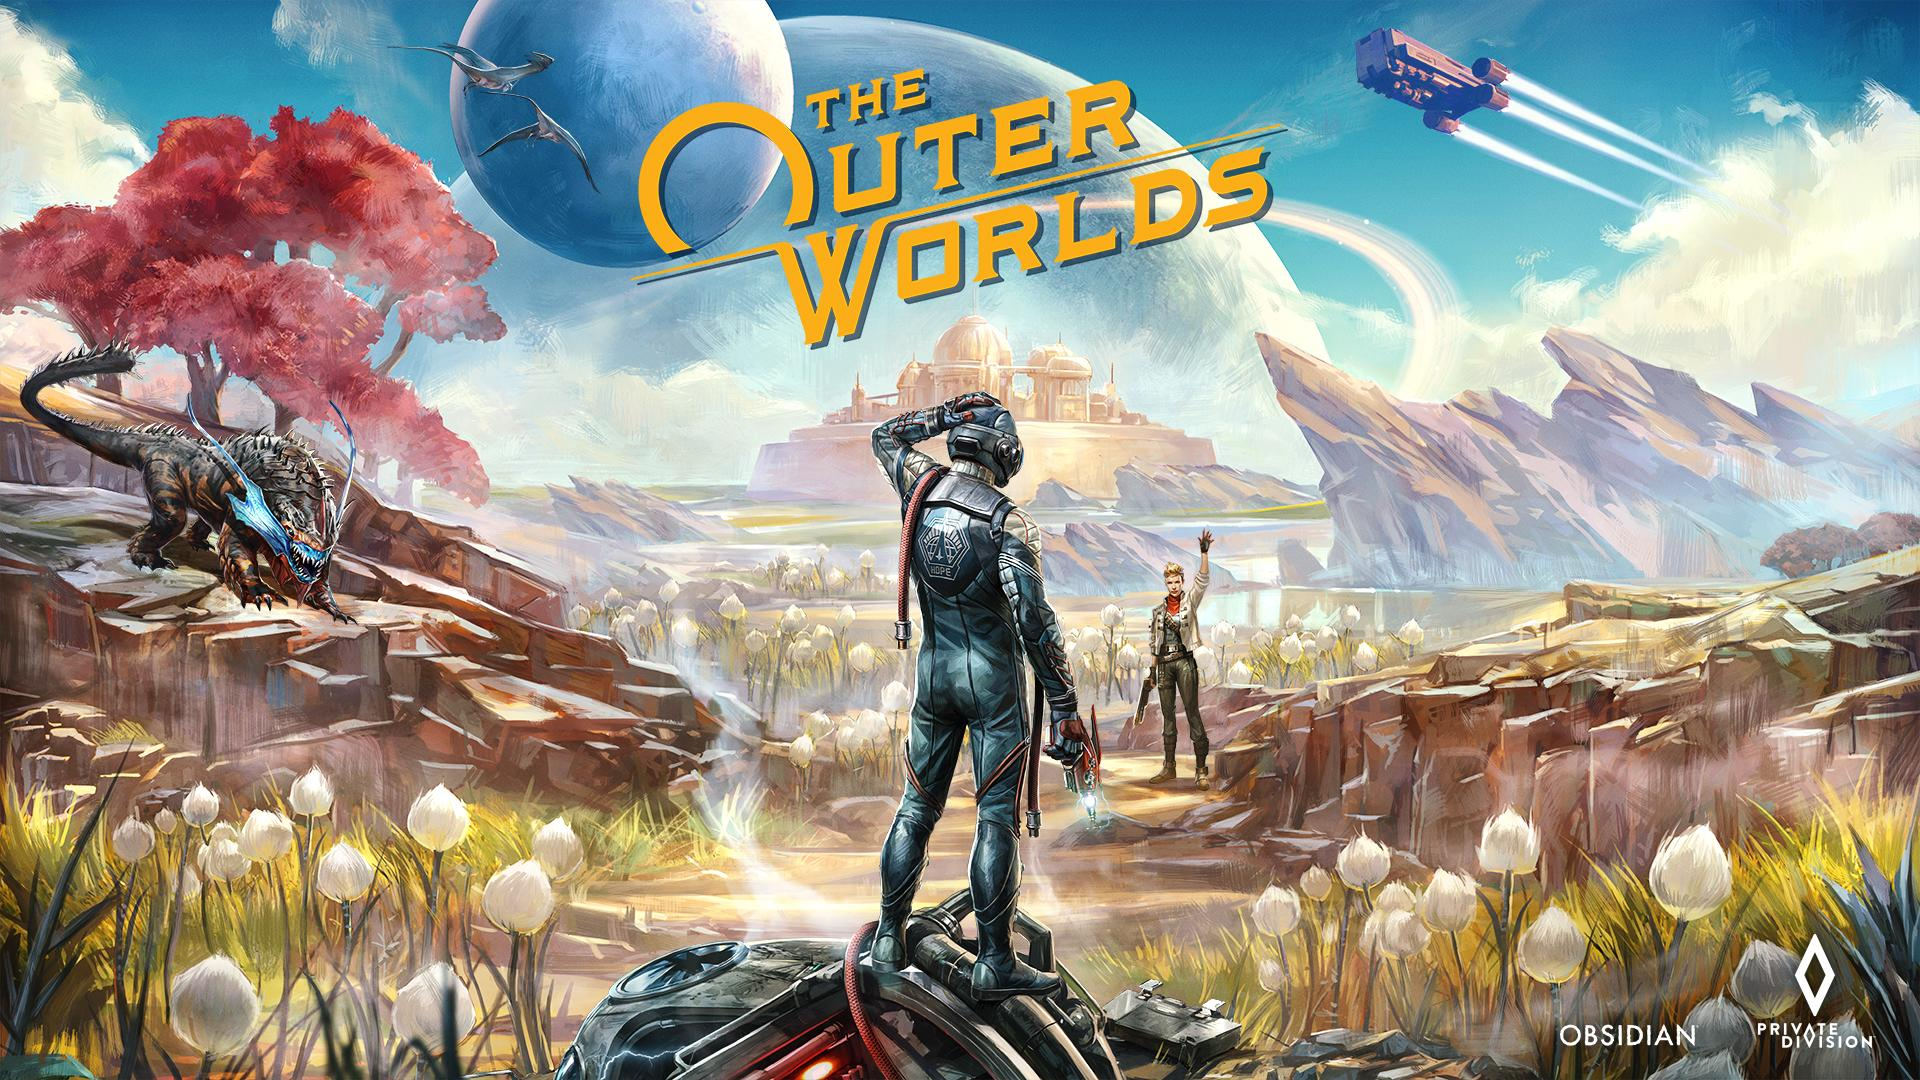 The Outer Worlds Dev Already Looking Into